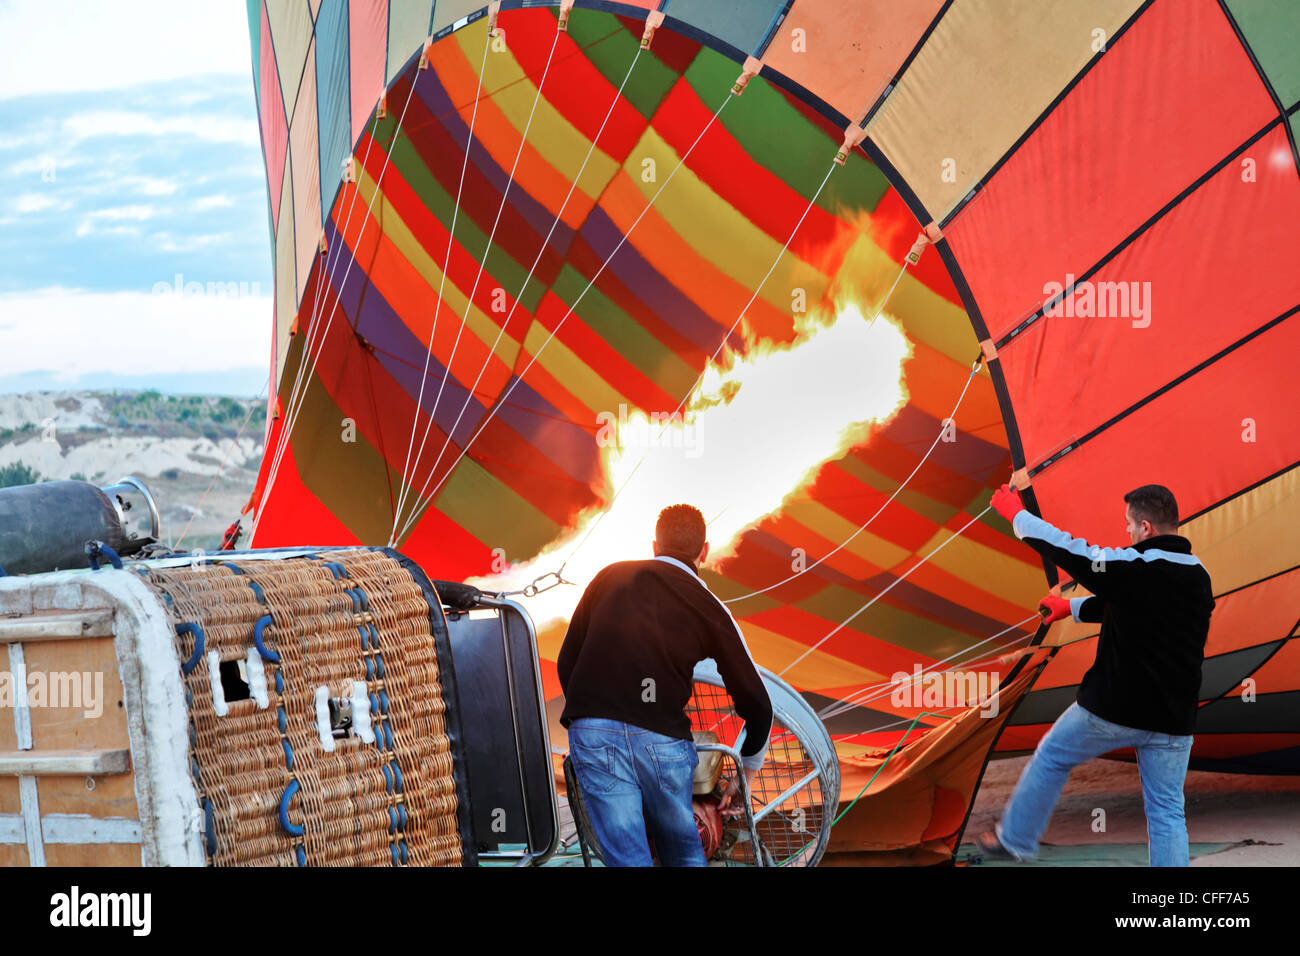 Firing up the balloon for the nest batch of tourists in Cappadocia - Stock Image